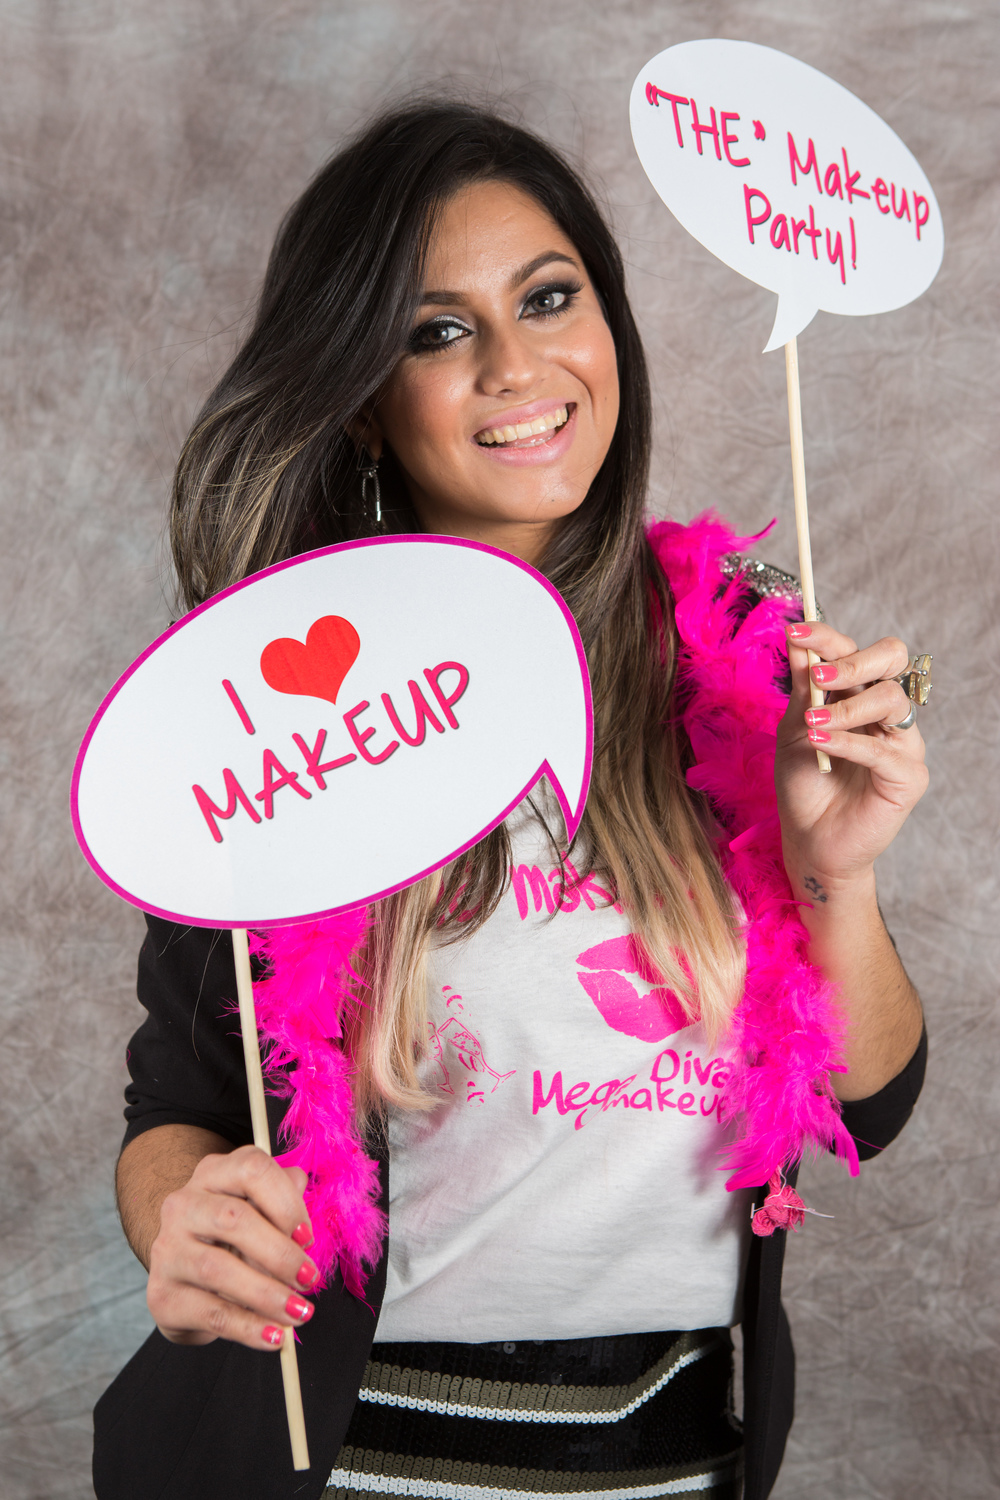 from The Makeup Party photo booth session